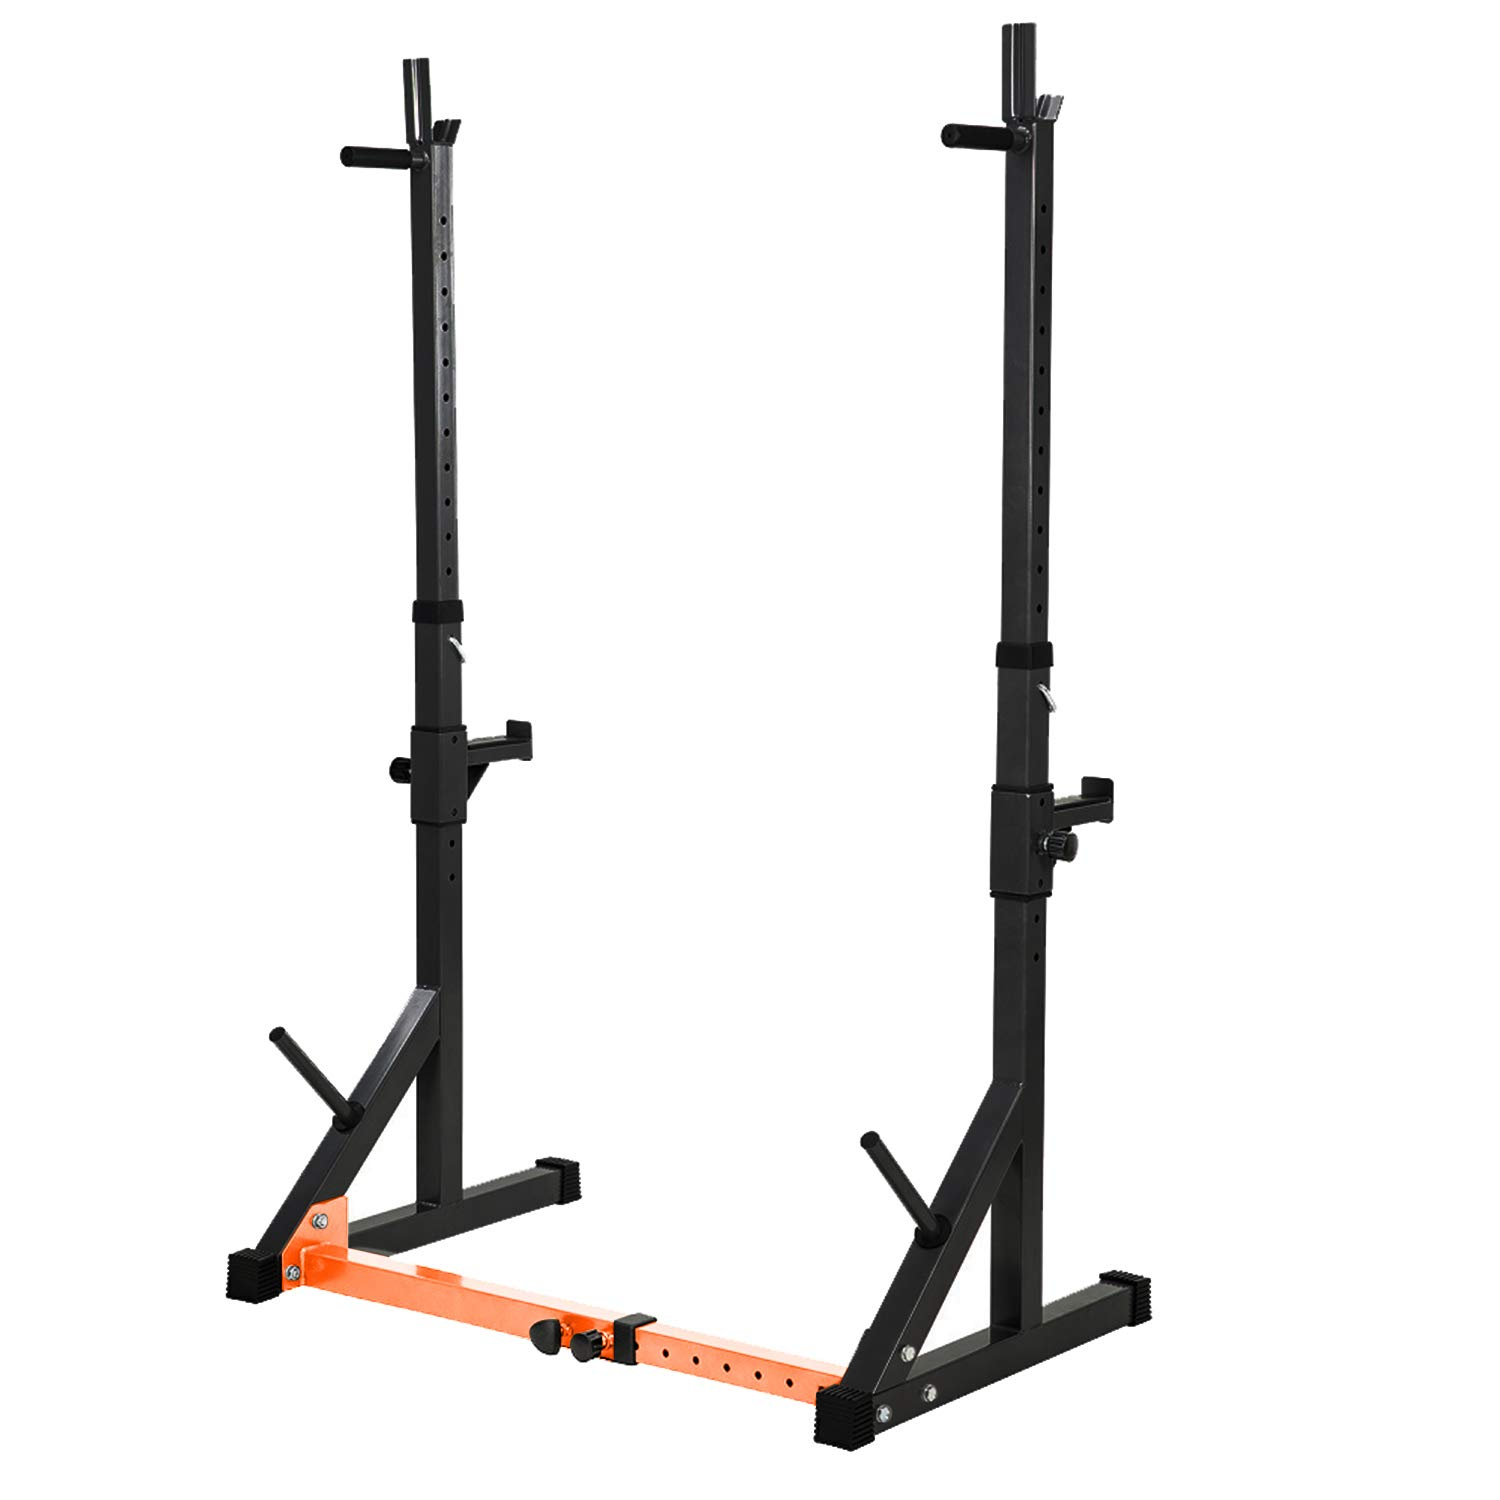 Vanswe Multi-Function Barbell Rack 550LBS Capacity Dip Stand Home Gym Fitness Adjustable Squat Rack Weight Lifting Bench Press Dipping Station (Black/Orange)